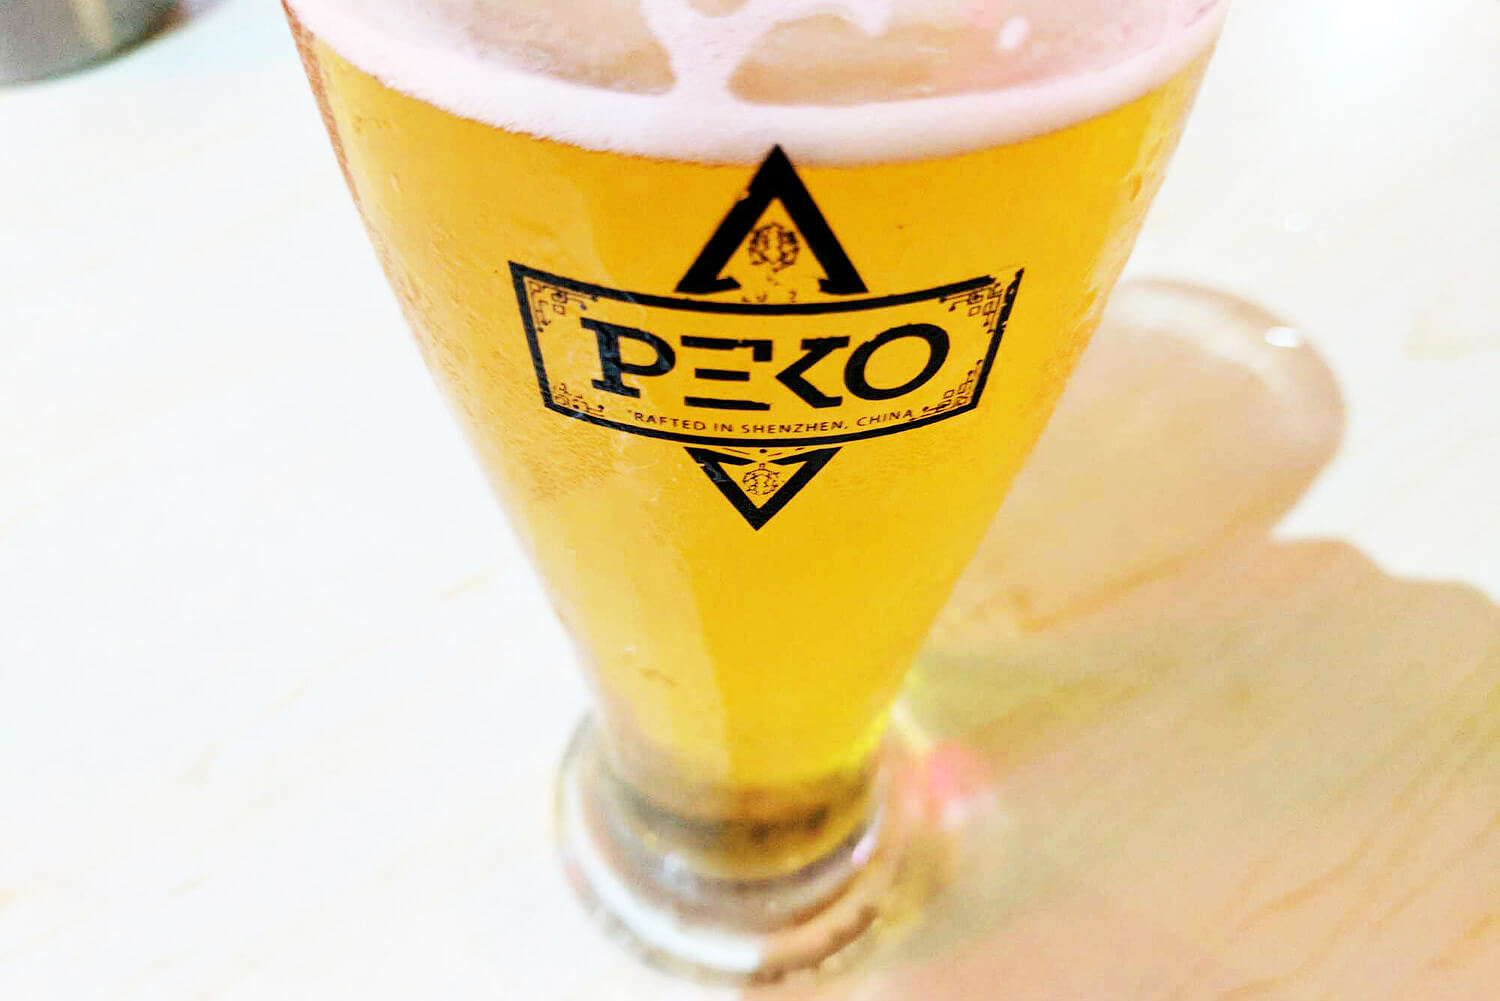 PEKO Brewing